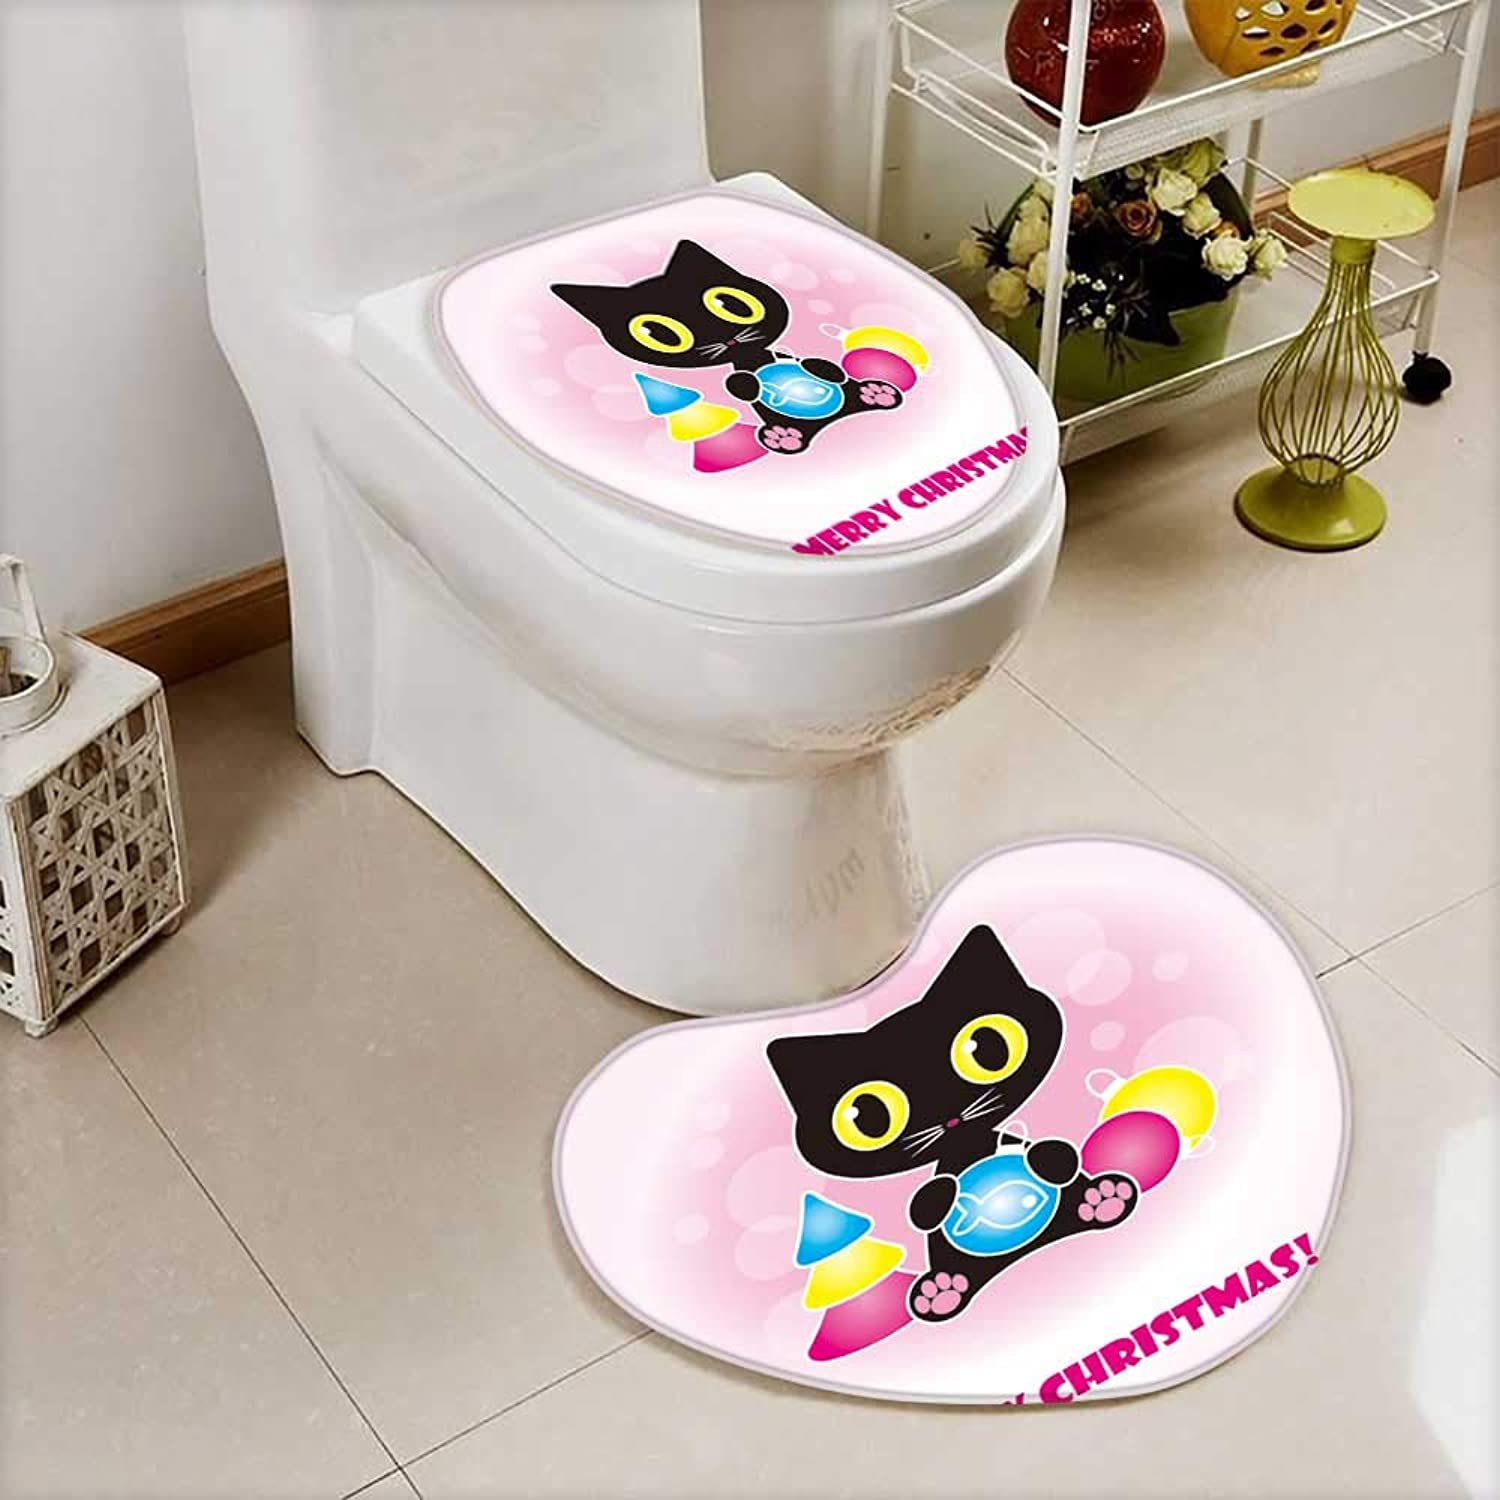 Analisahome Cushion Non-Slip Toilet Mat Christmas Card with High Absorbency